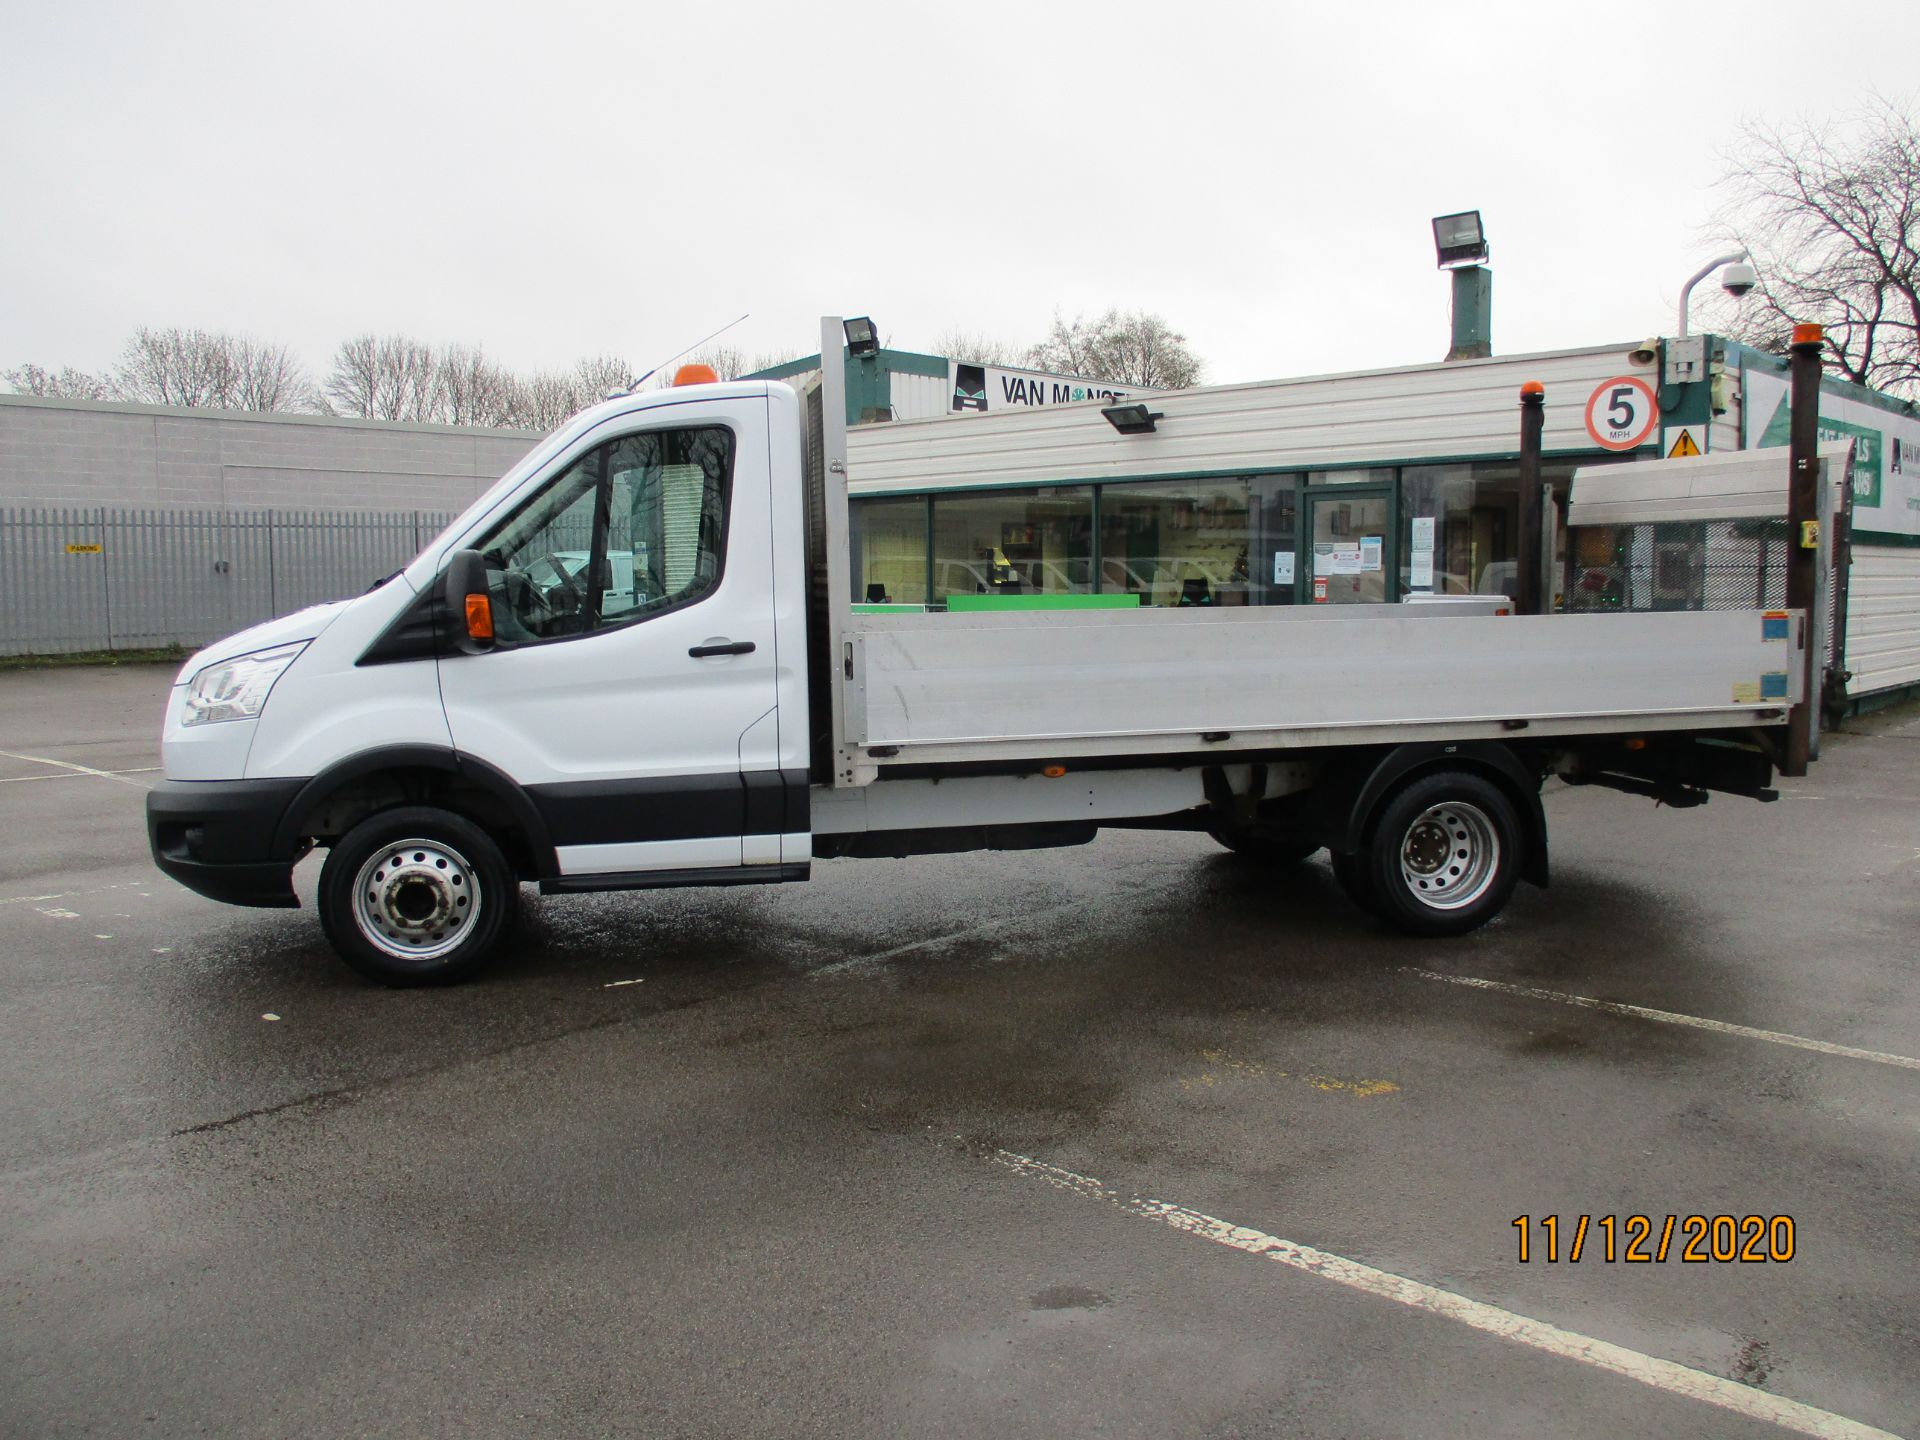 2016 Ford Transit 2.2 Tdci 125Ps Chassis Cab (FL66FAK) Image 4